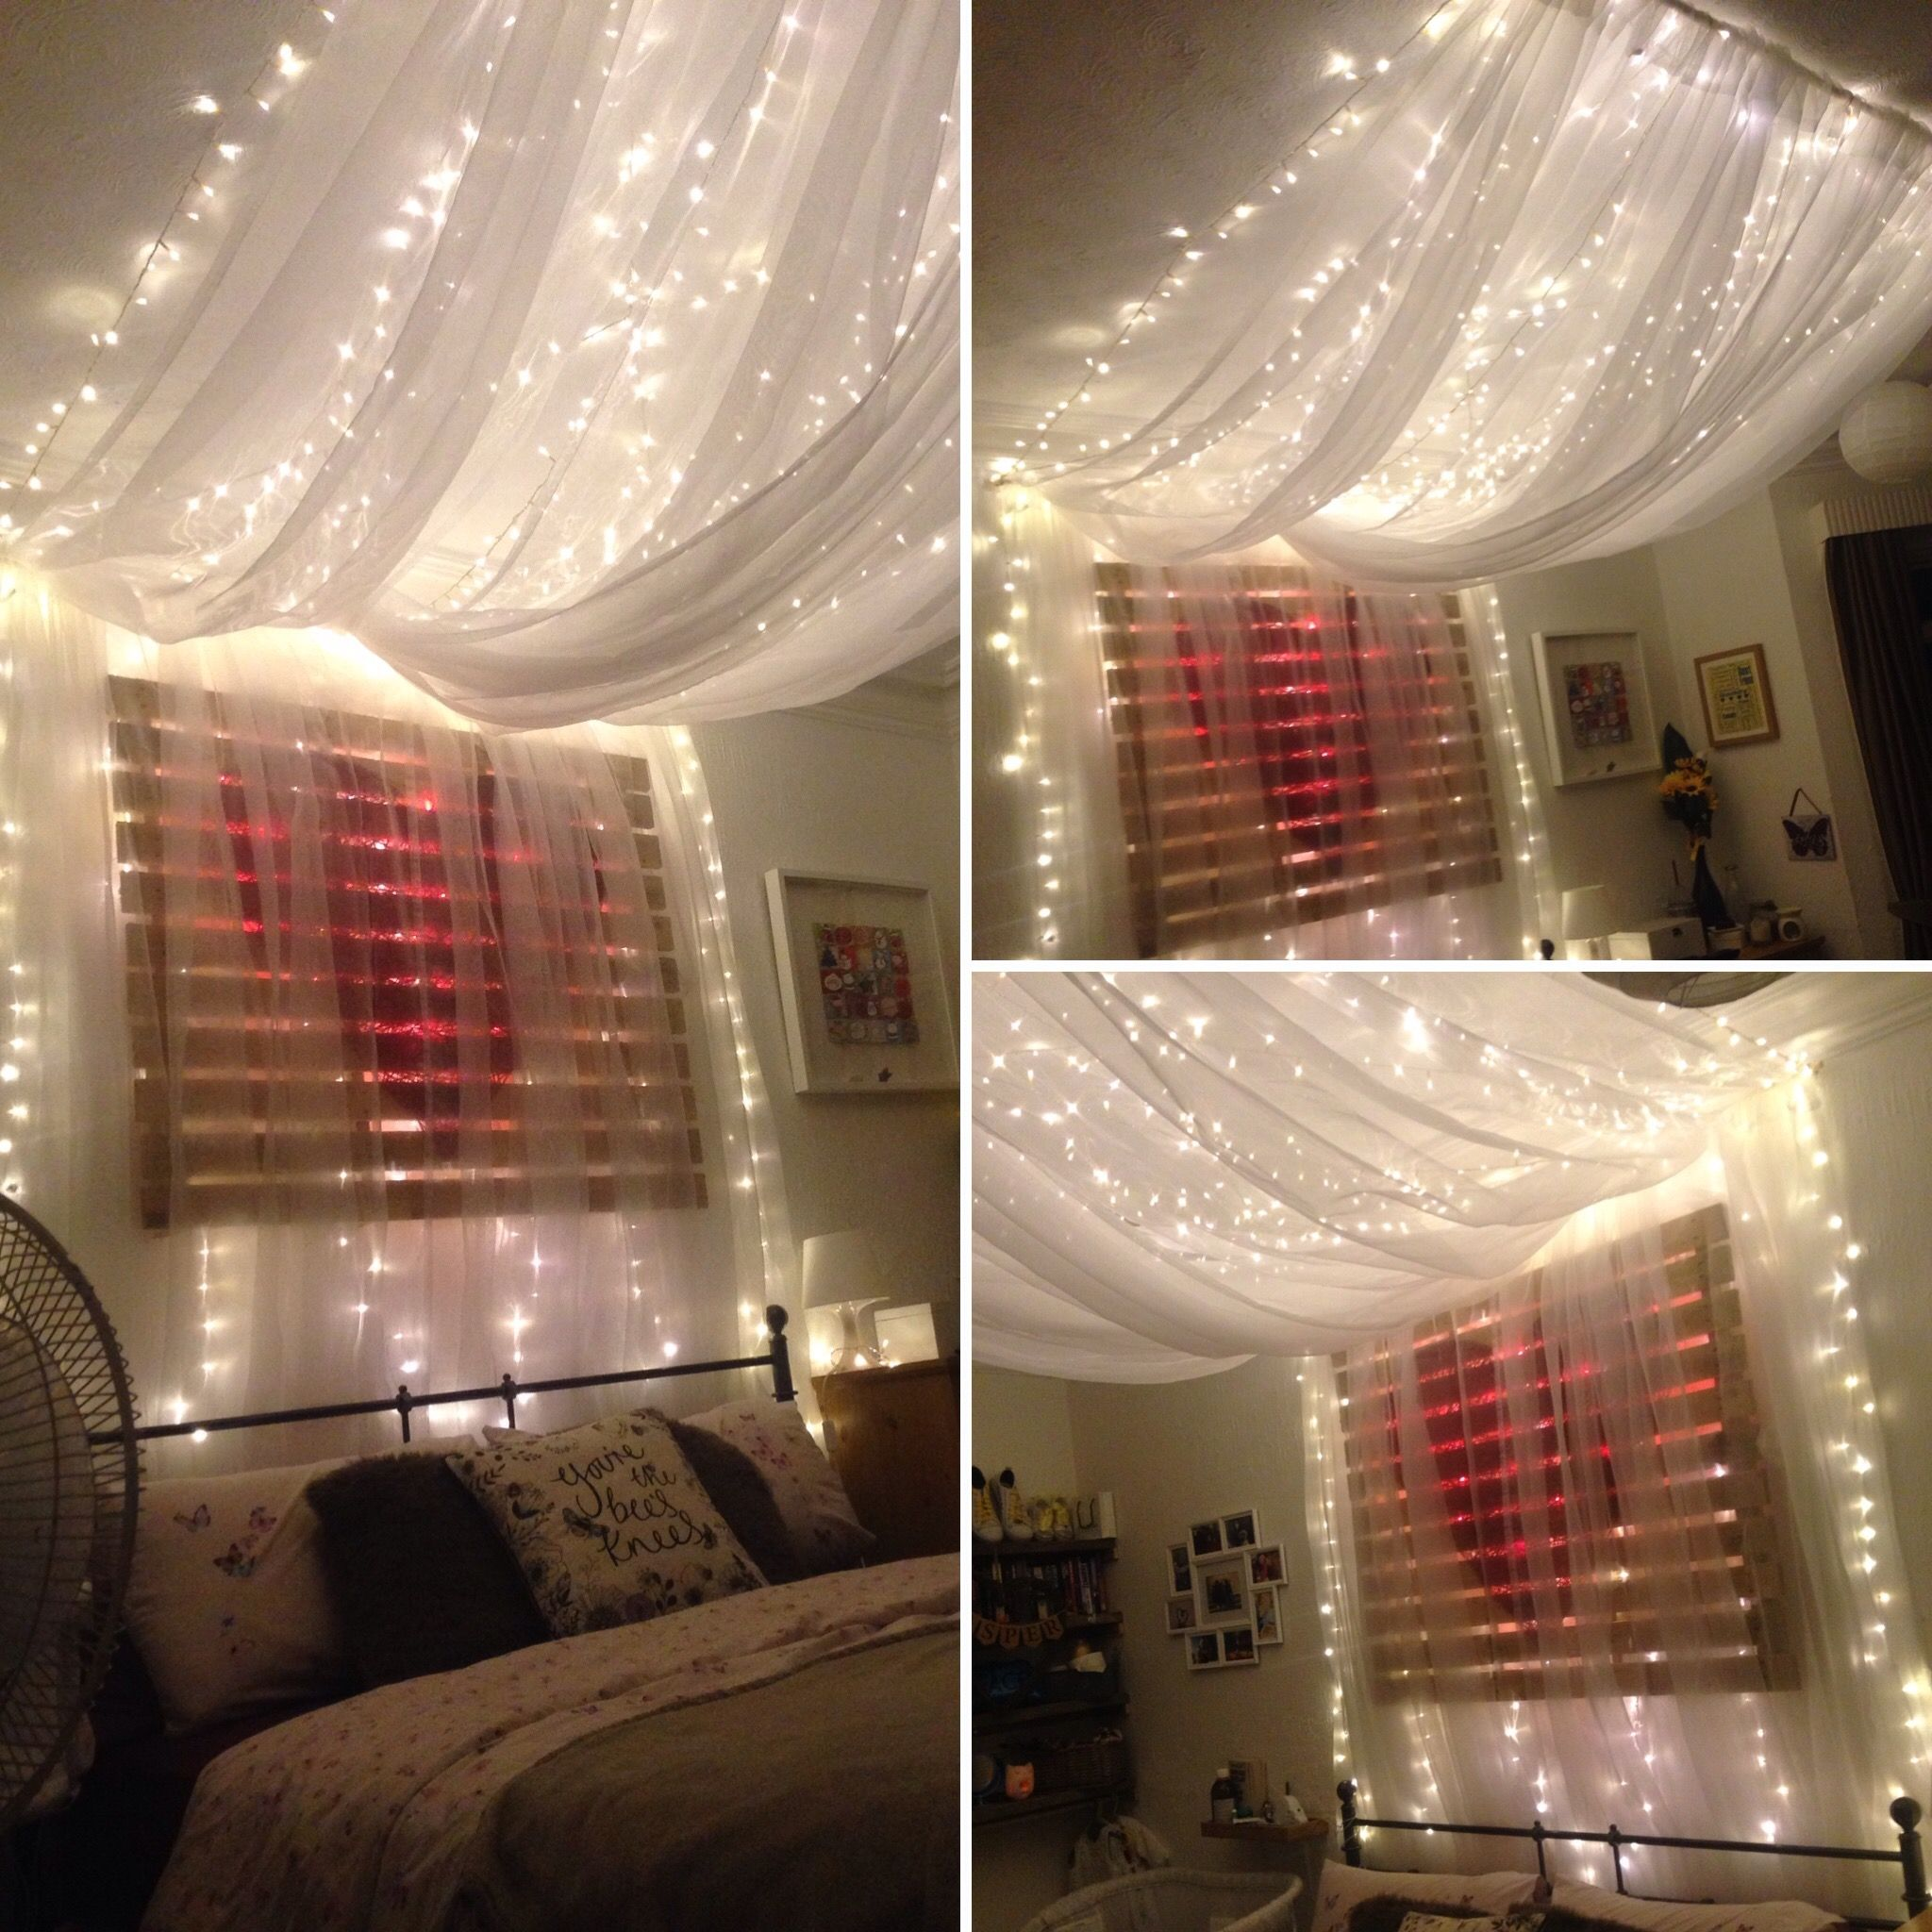 Fairy light bed canopy hung from ceiling to give effect of for Canopy over bed